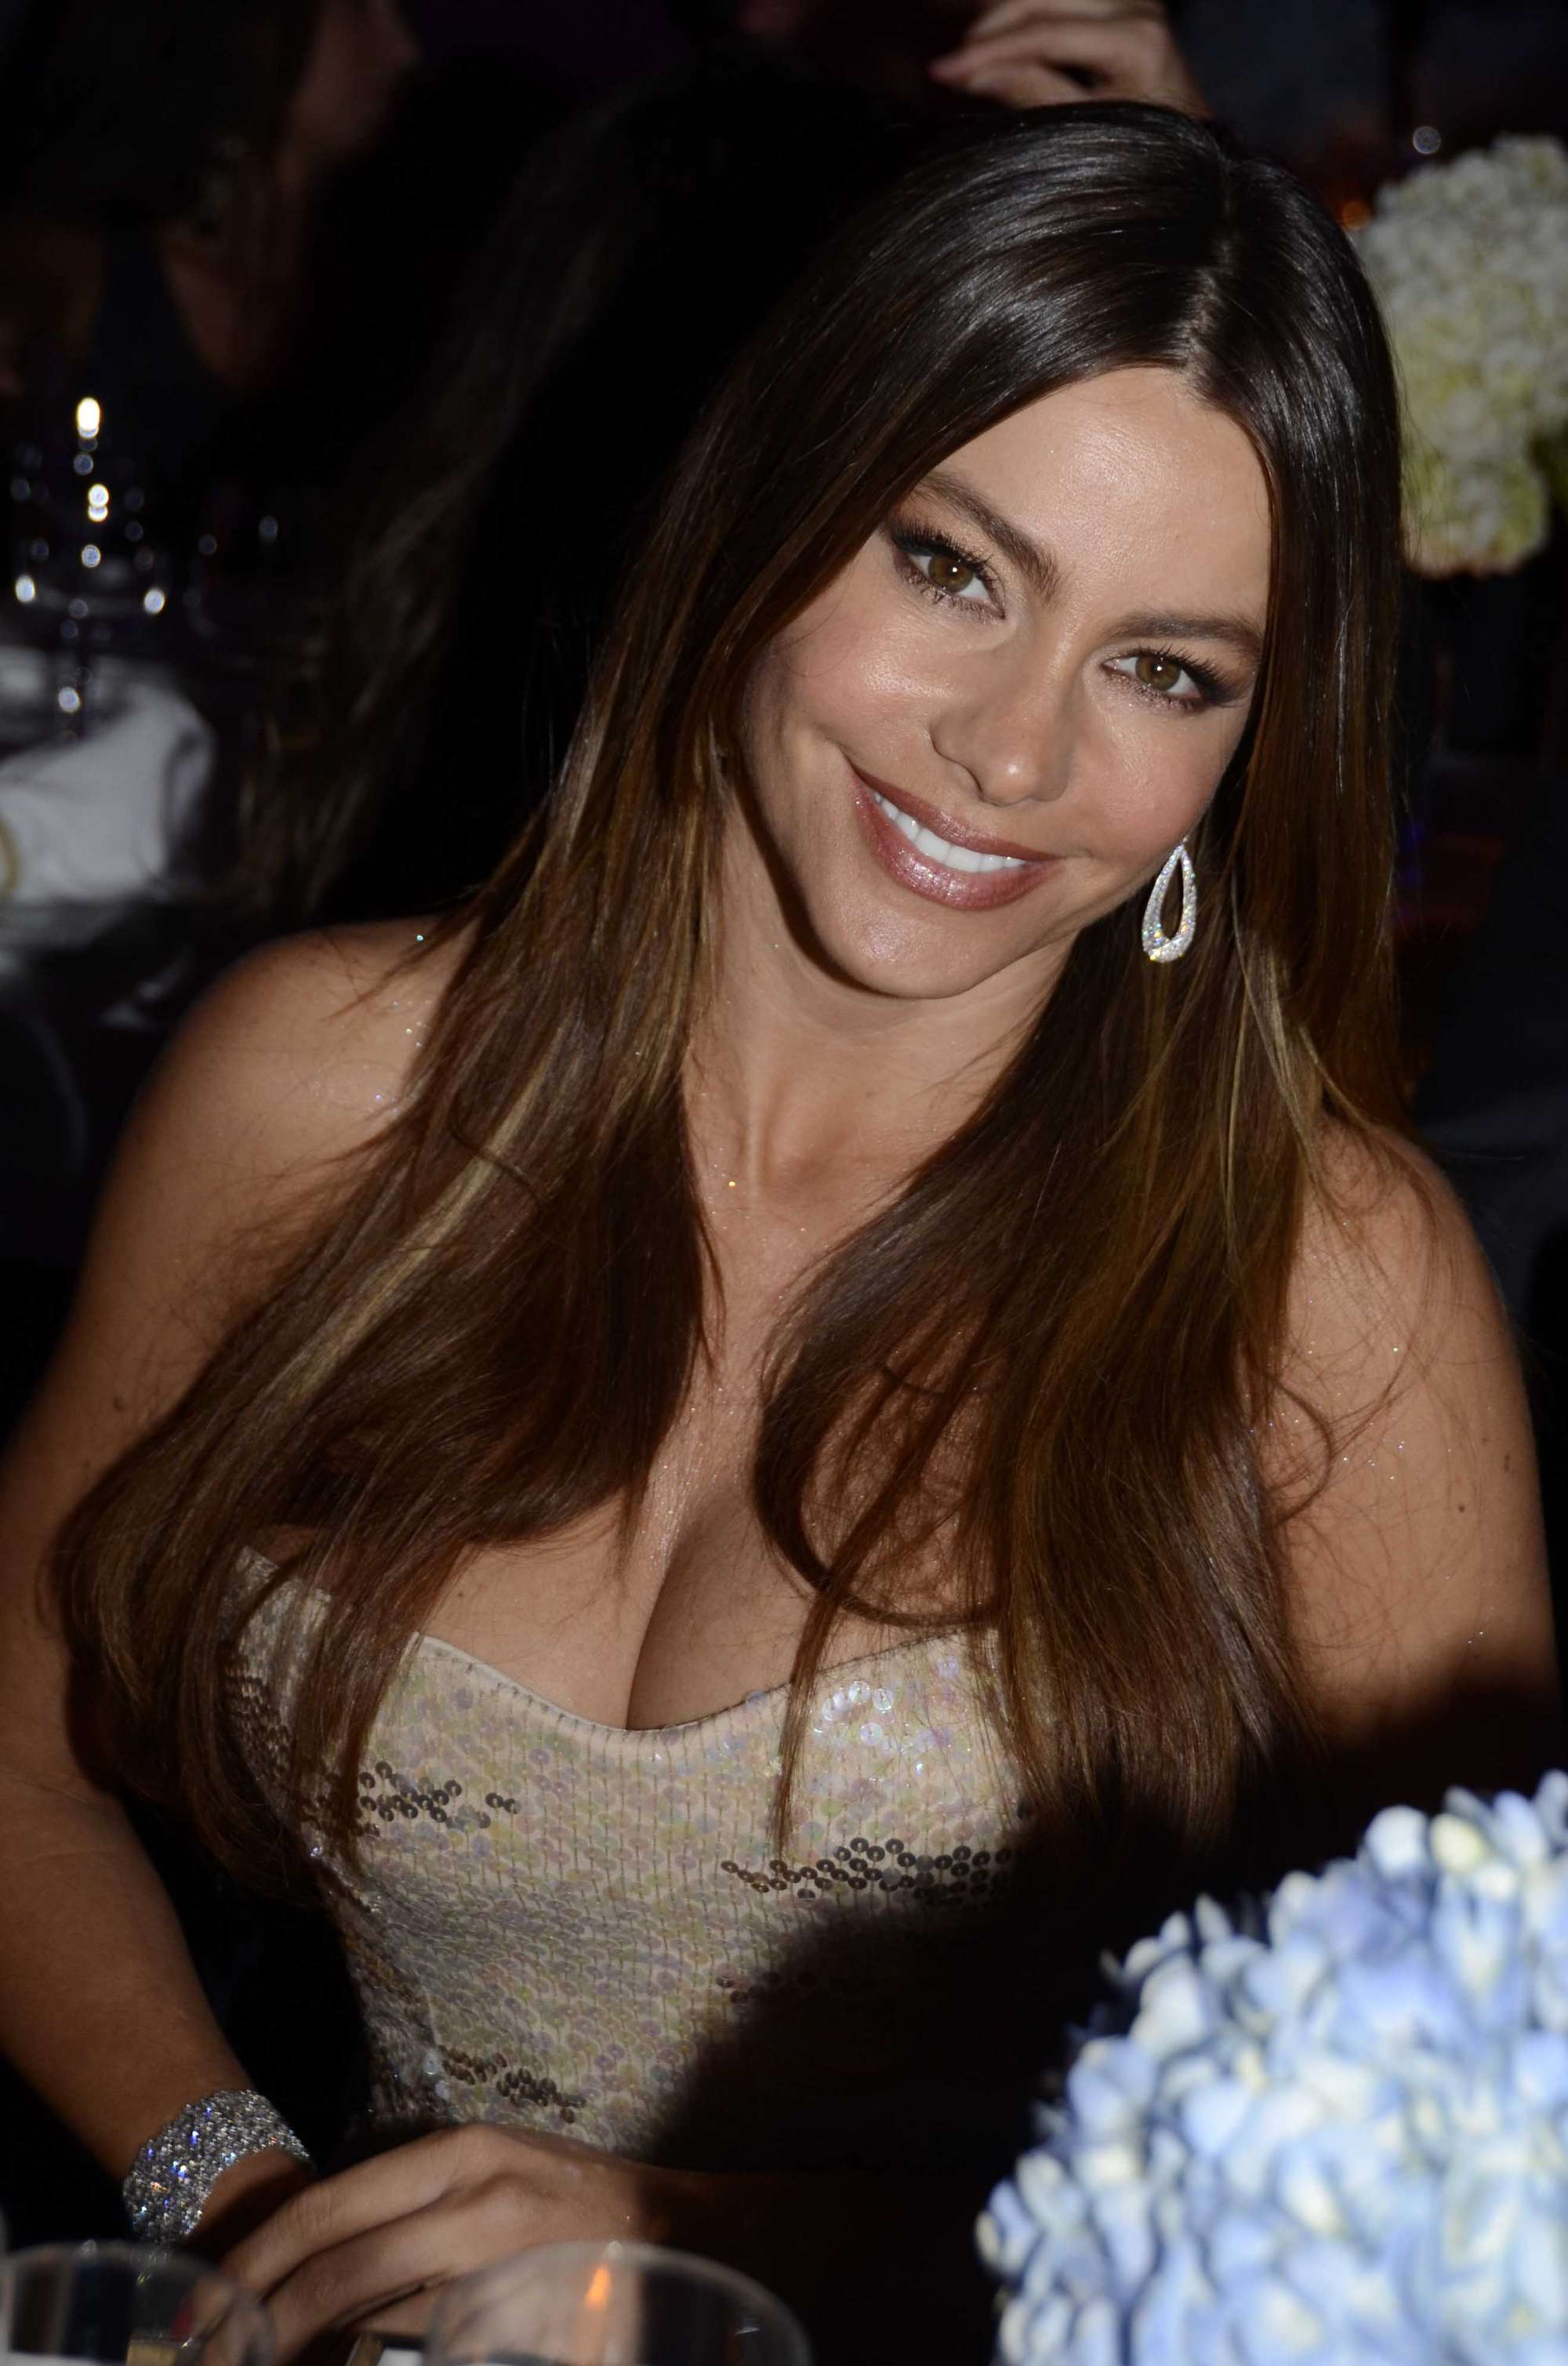 cleavage Sofia vergara